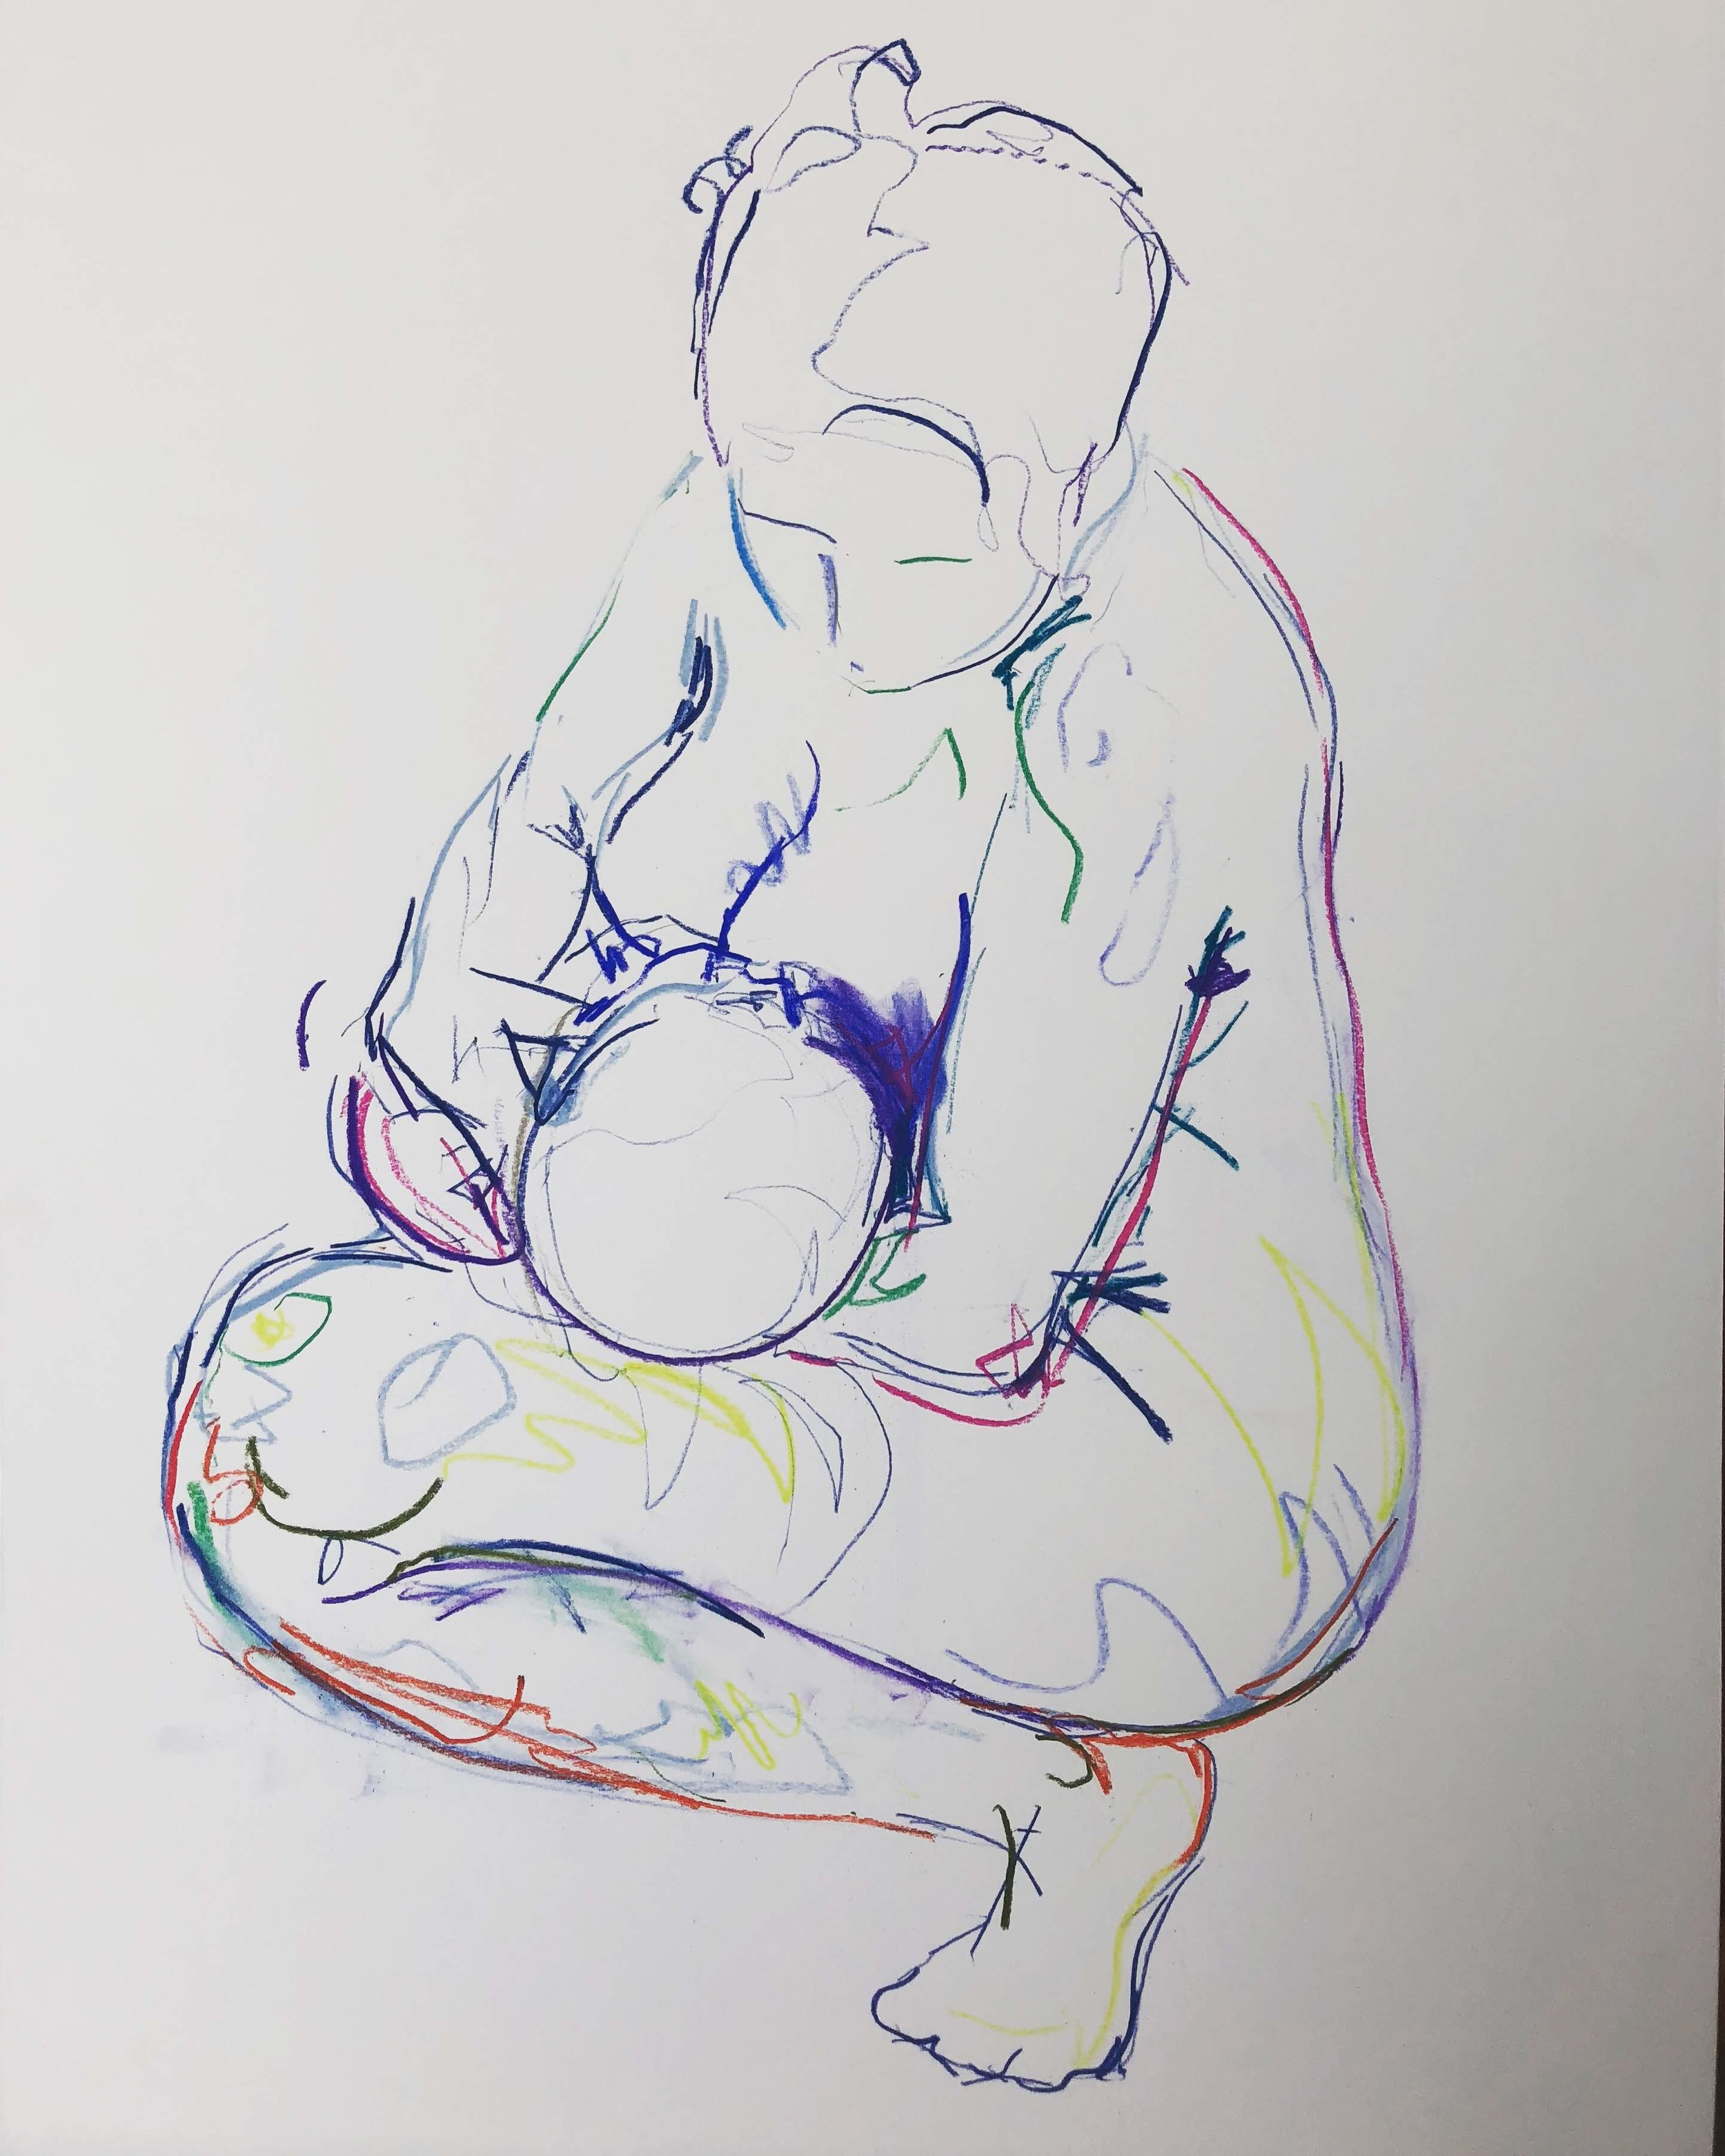 Crouching mother feeding newborn 1, pastel on paper, framed 69x53cm